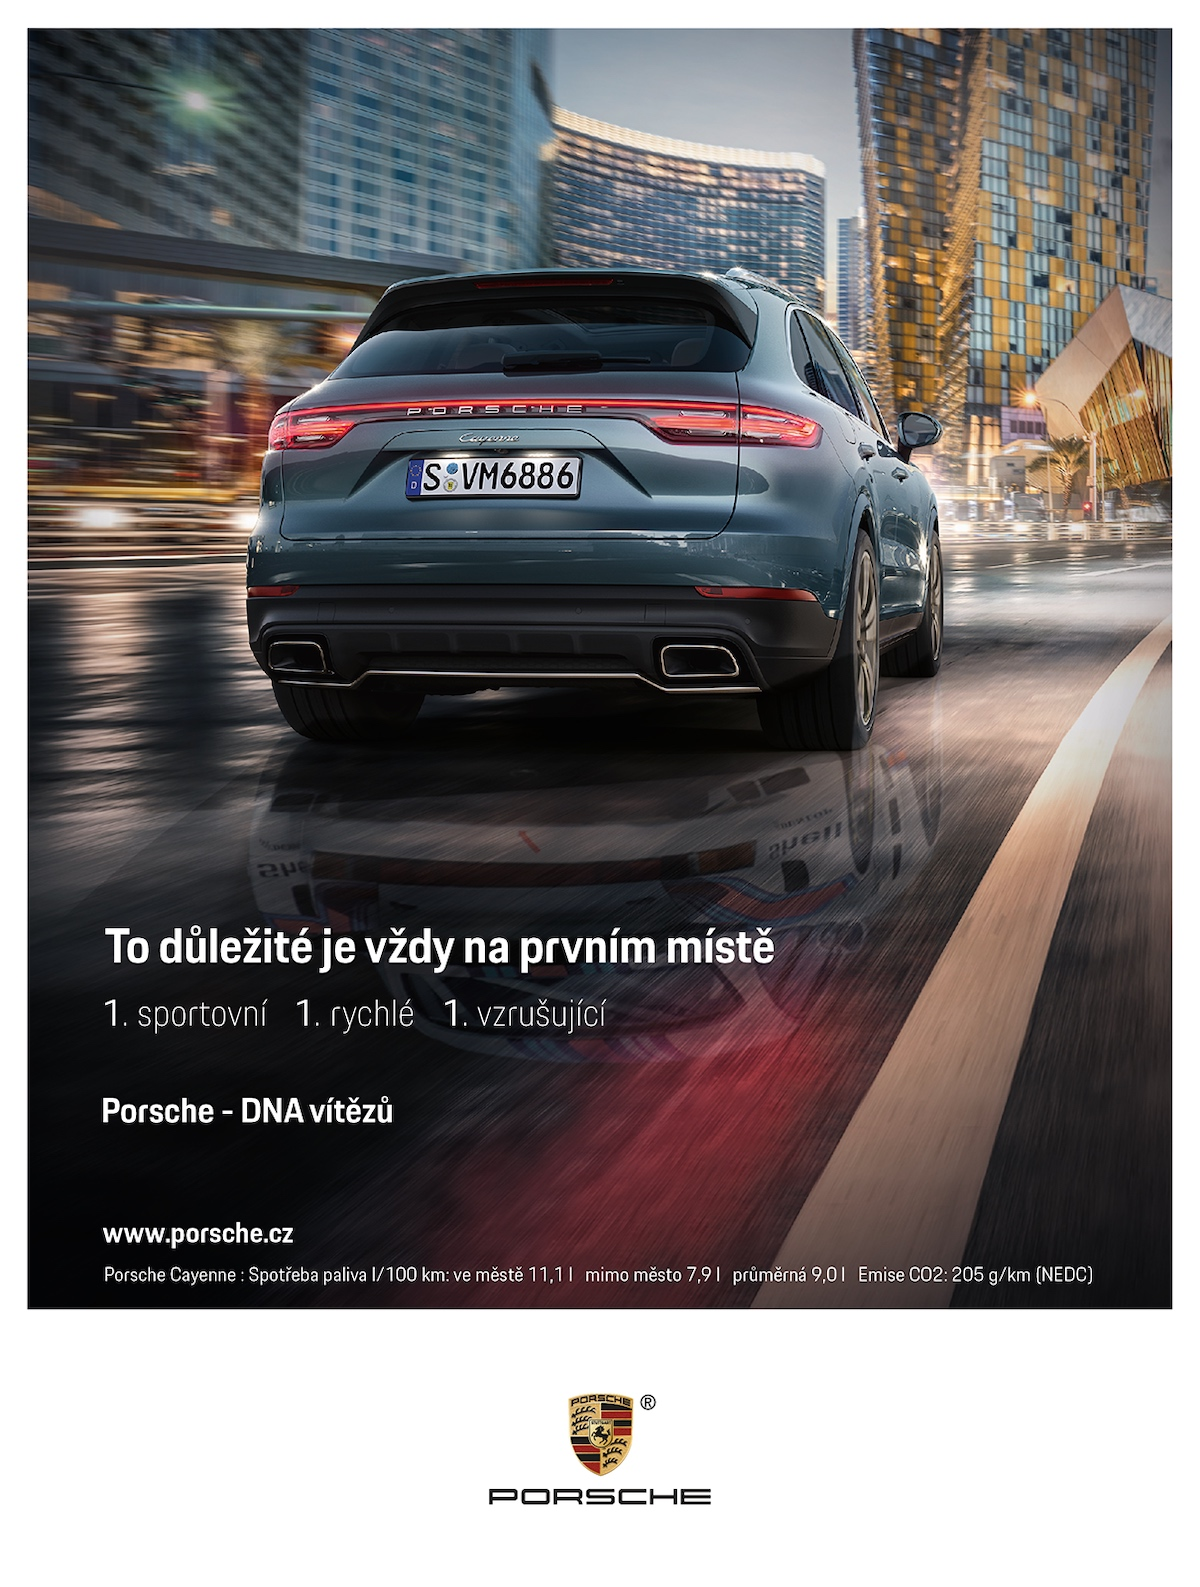 Porsche: DNA vítězů (Fairy Tailors)